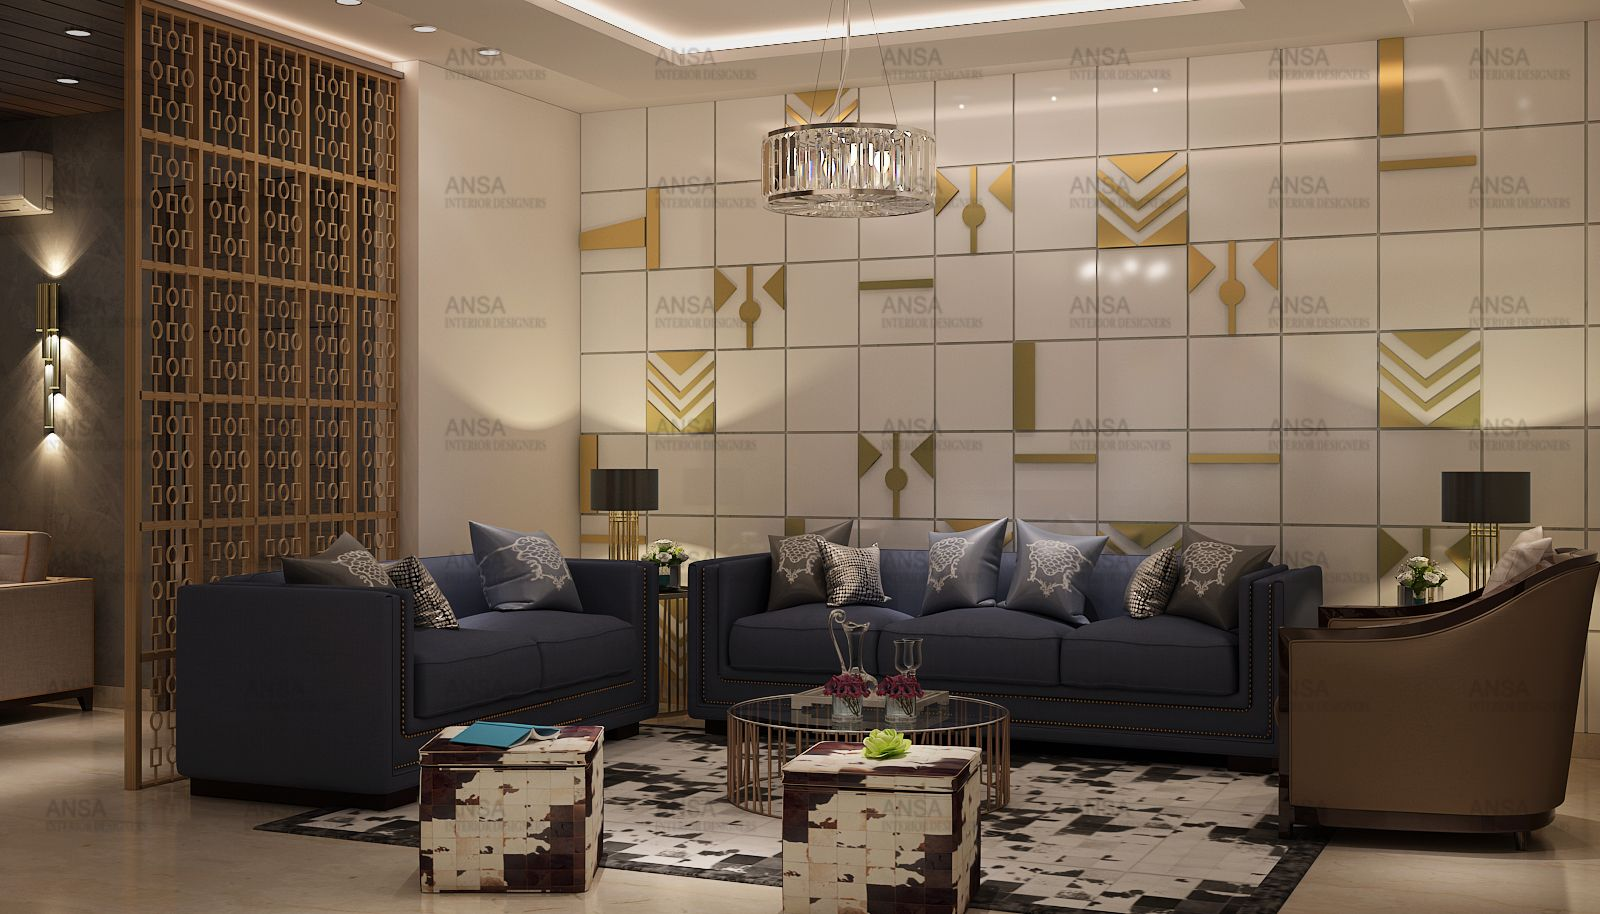 Office Interior Design Services With Images Office Interior